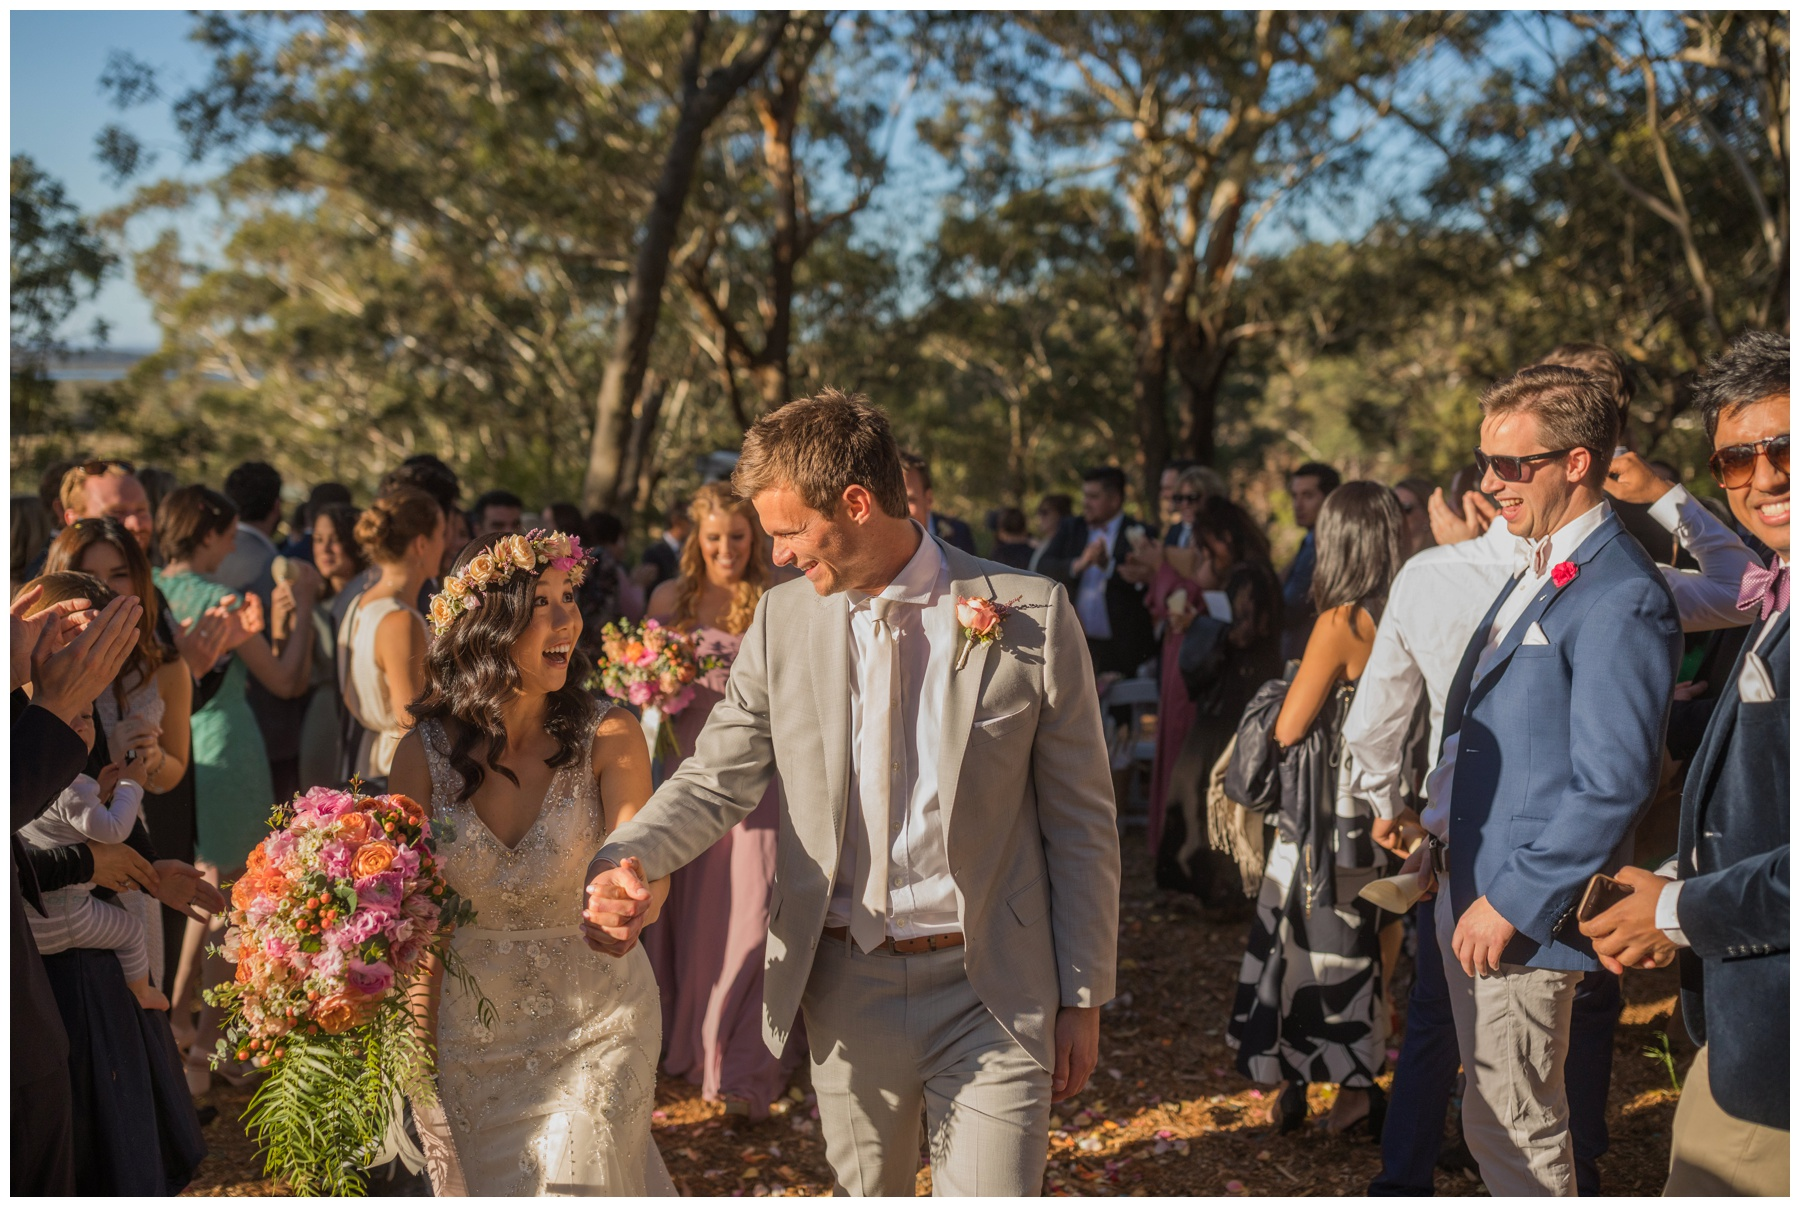 Country Wedding photographer, Nelson Bay wedding, Kangaroo Valley wedding photographer, Southern highlands photographer, relaxed wedding